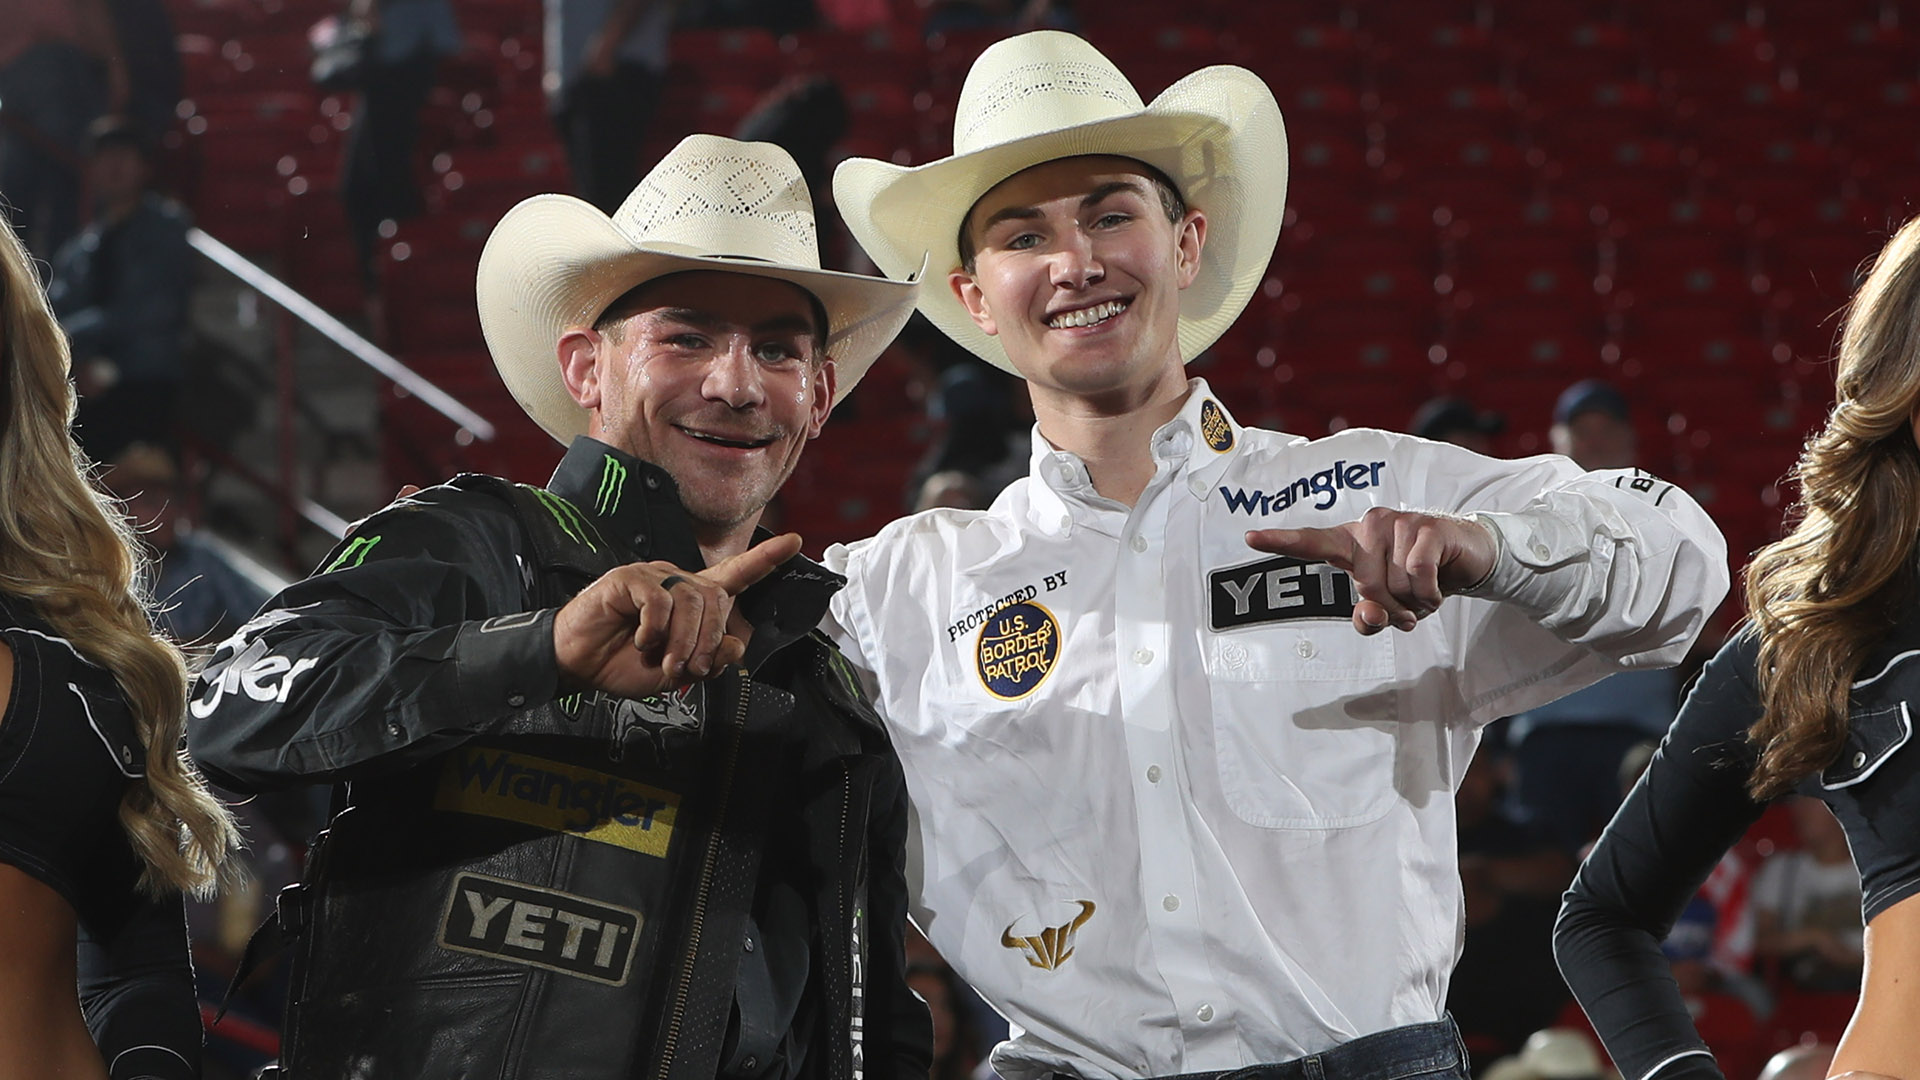 Outlaw and Lockwood split Round 1 win in Albuquerque